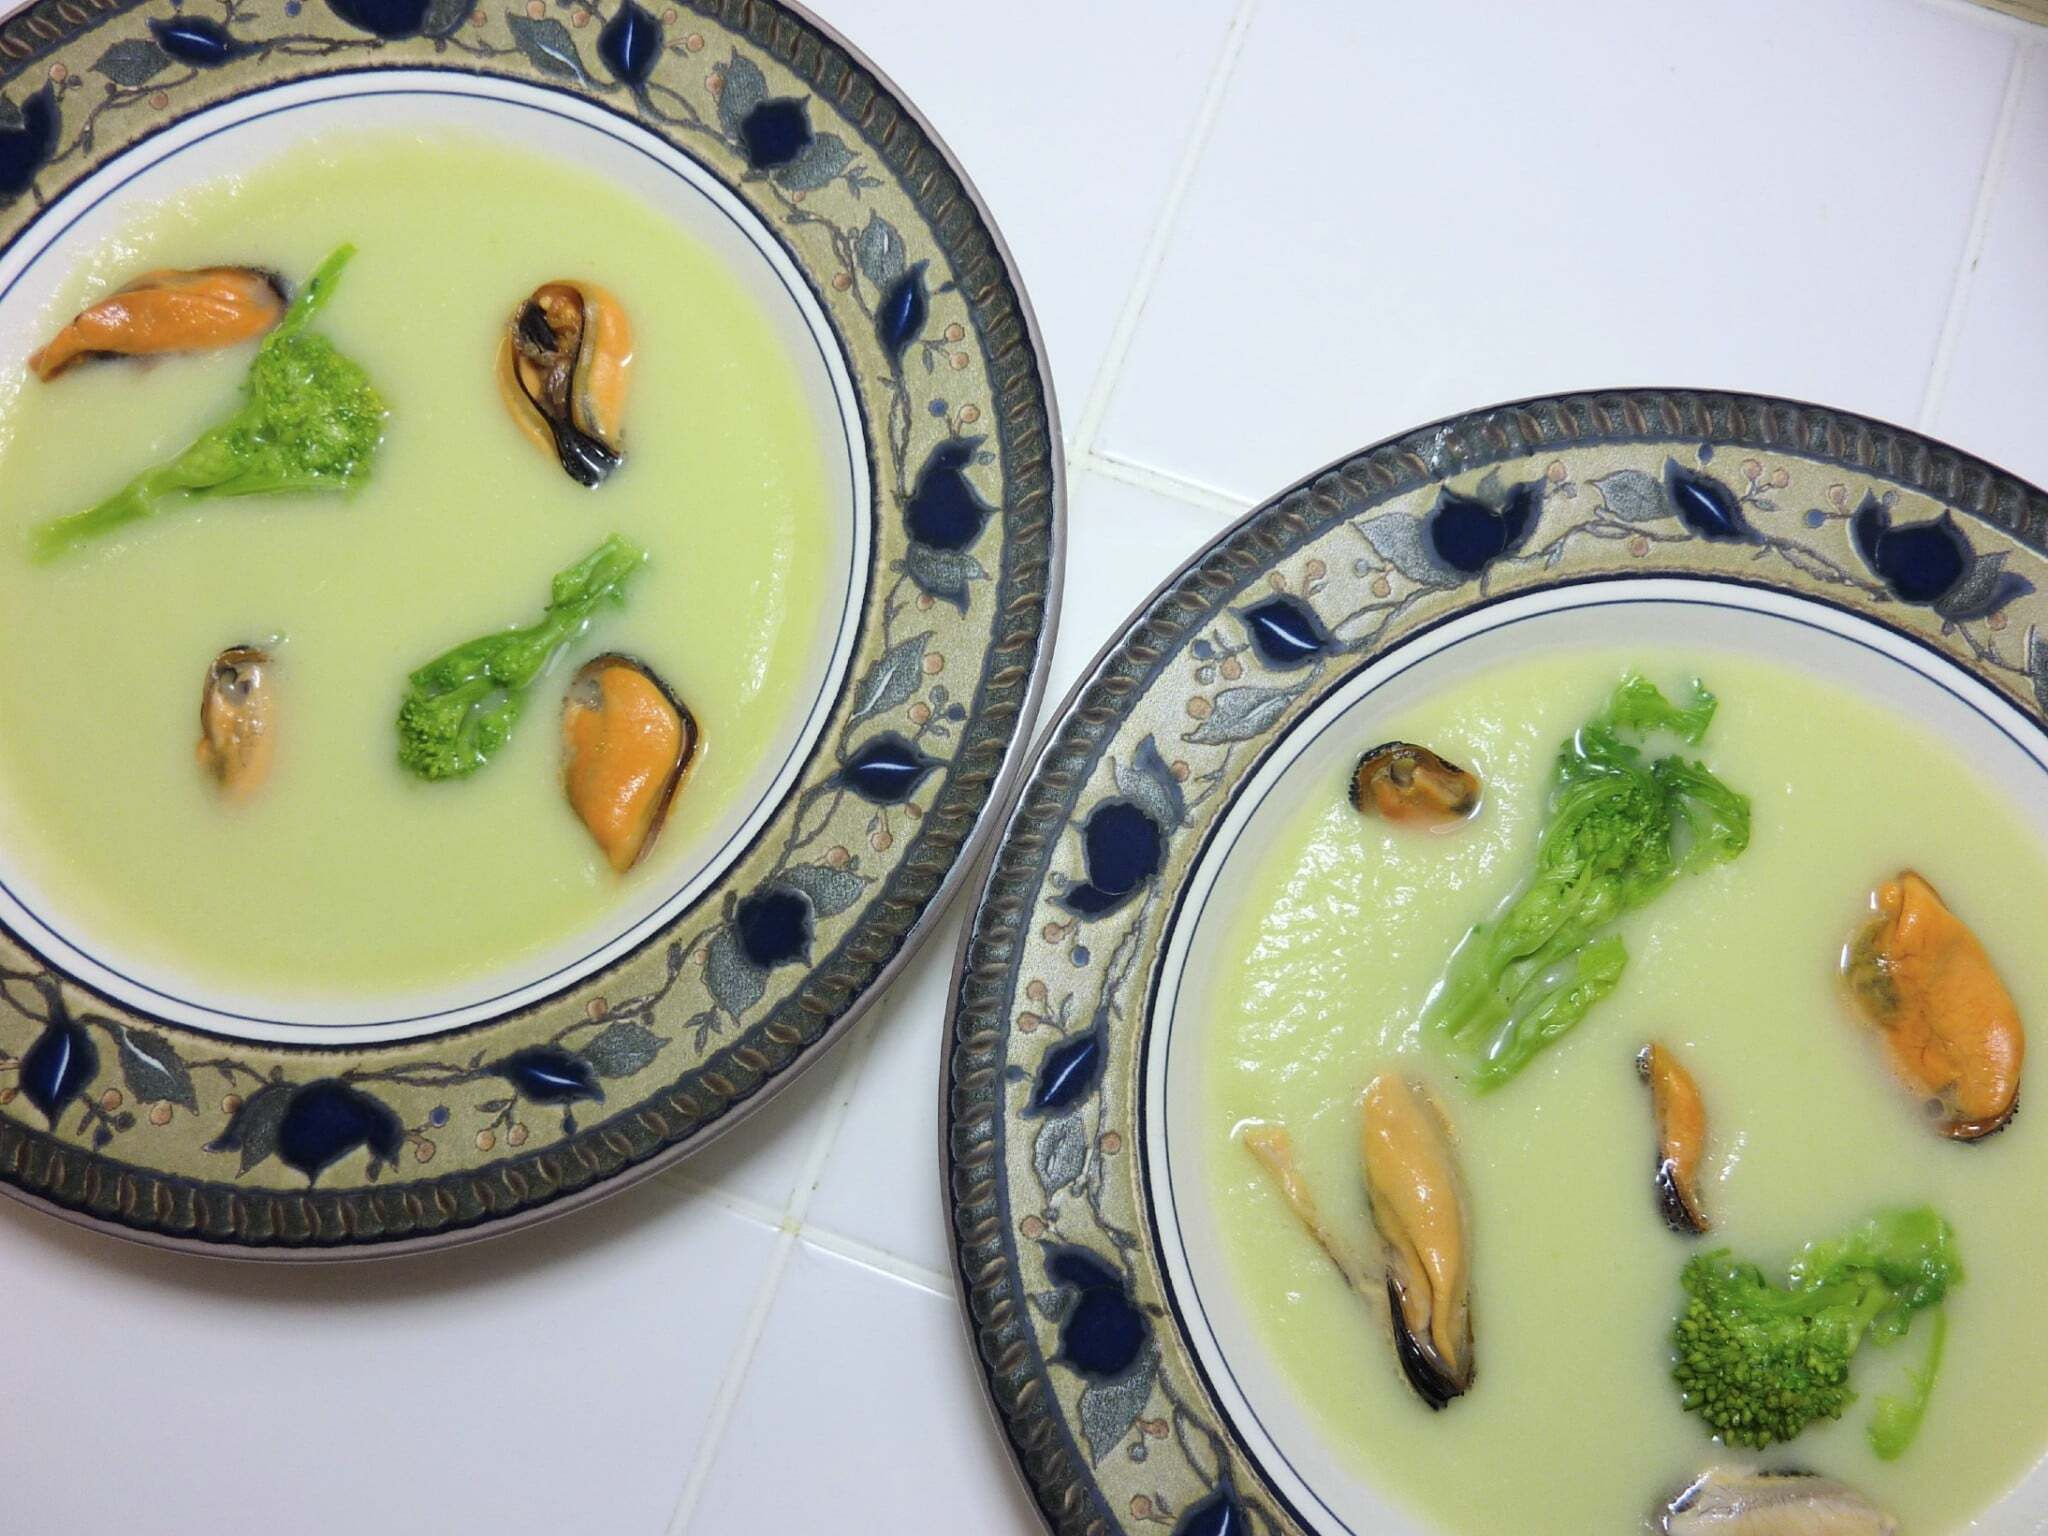 Chayote Mousse with Mussels and Cime di Rapa